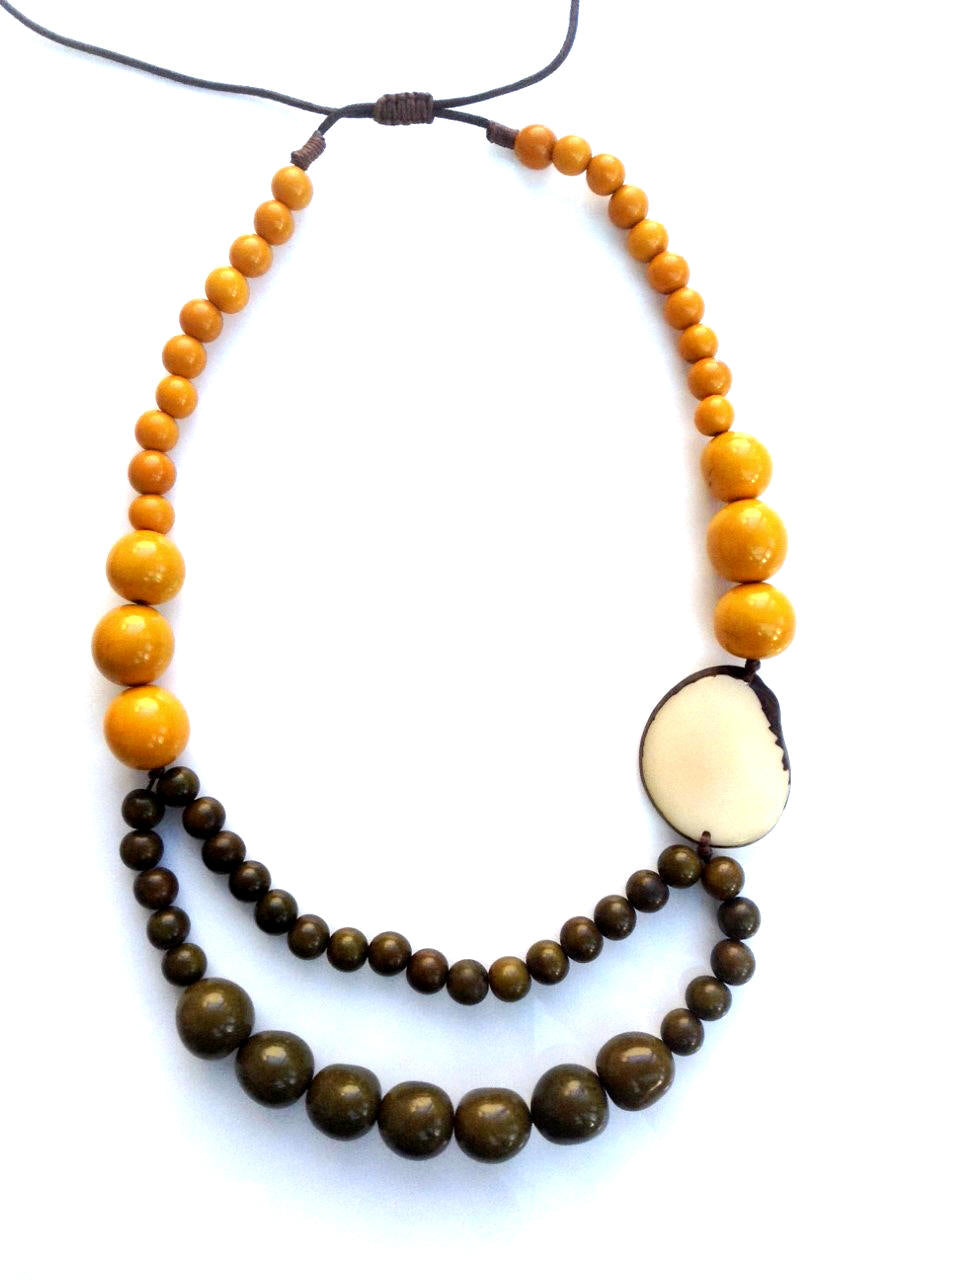 Trilogy necklace - Mustard & Browns tones